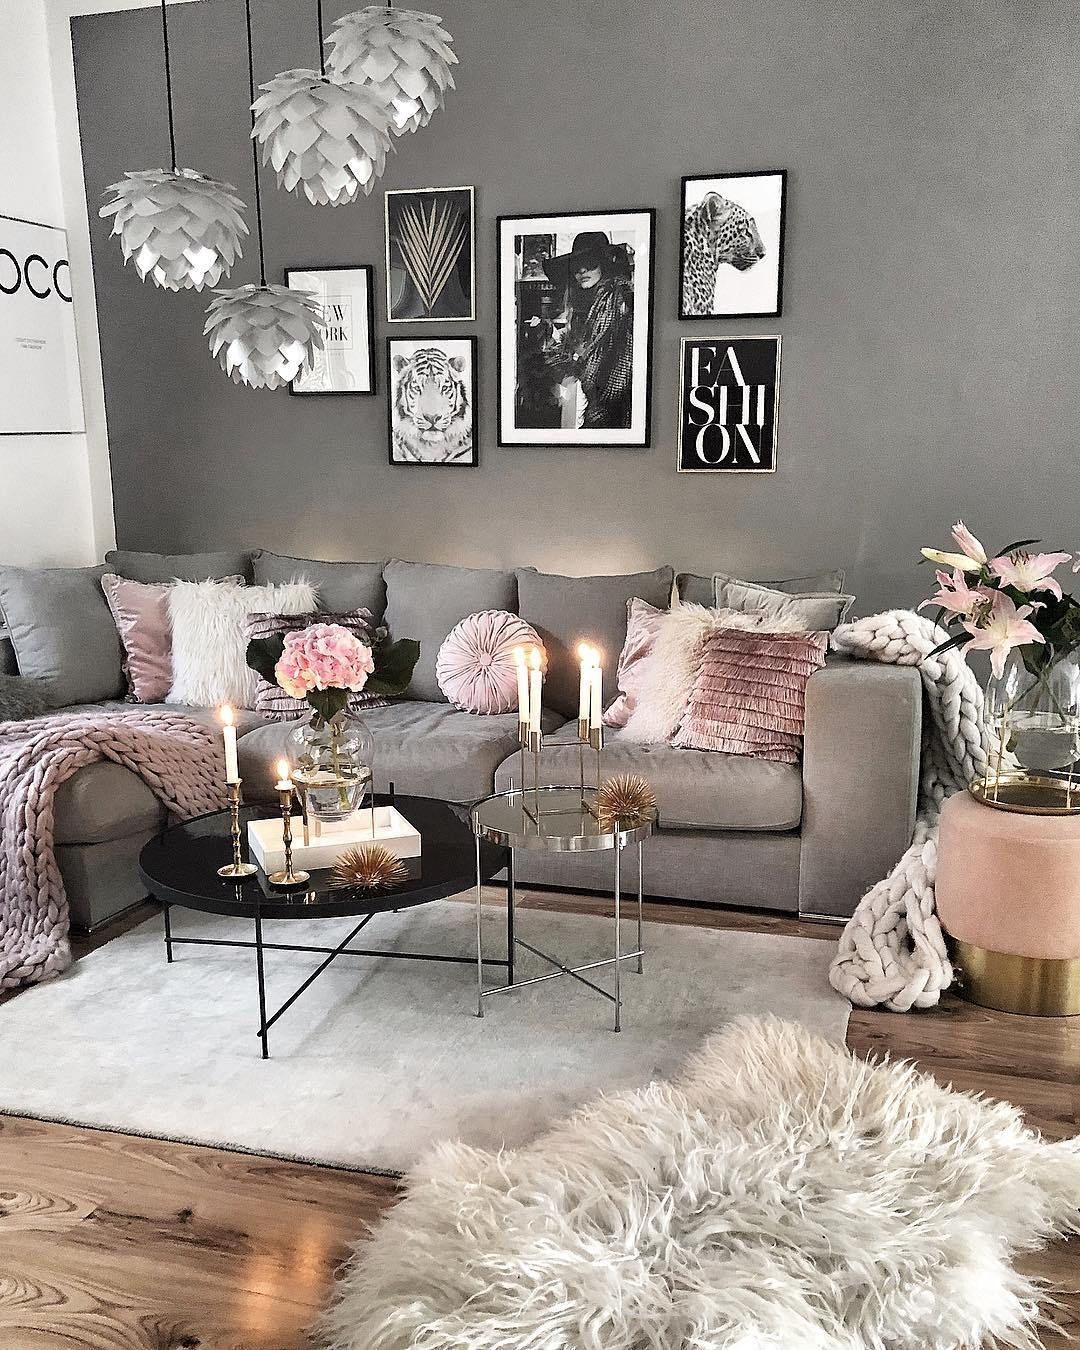 28 Cozy Living Room Decor Ideas To Copy Living Room Decor Cozy